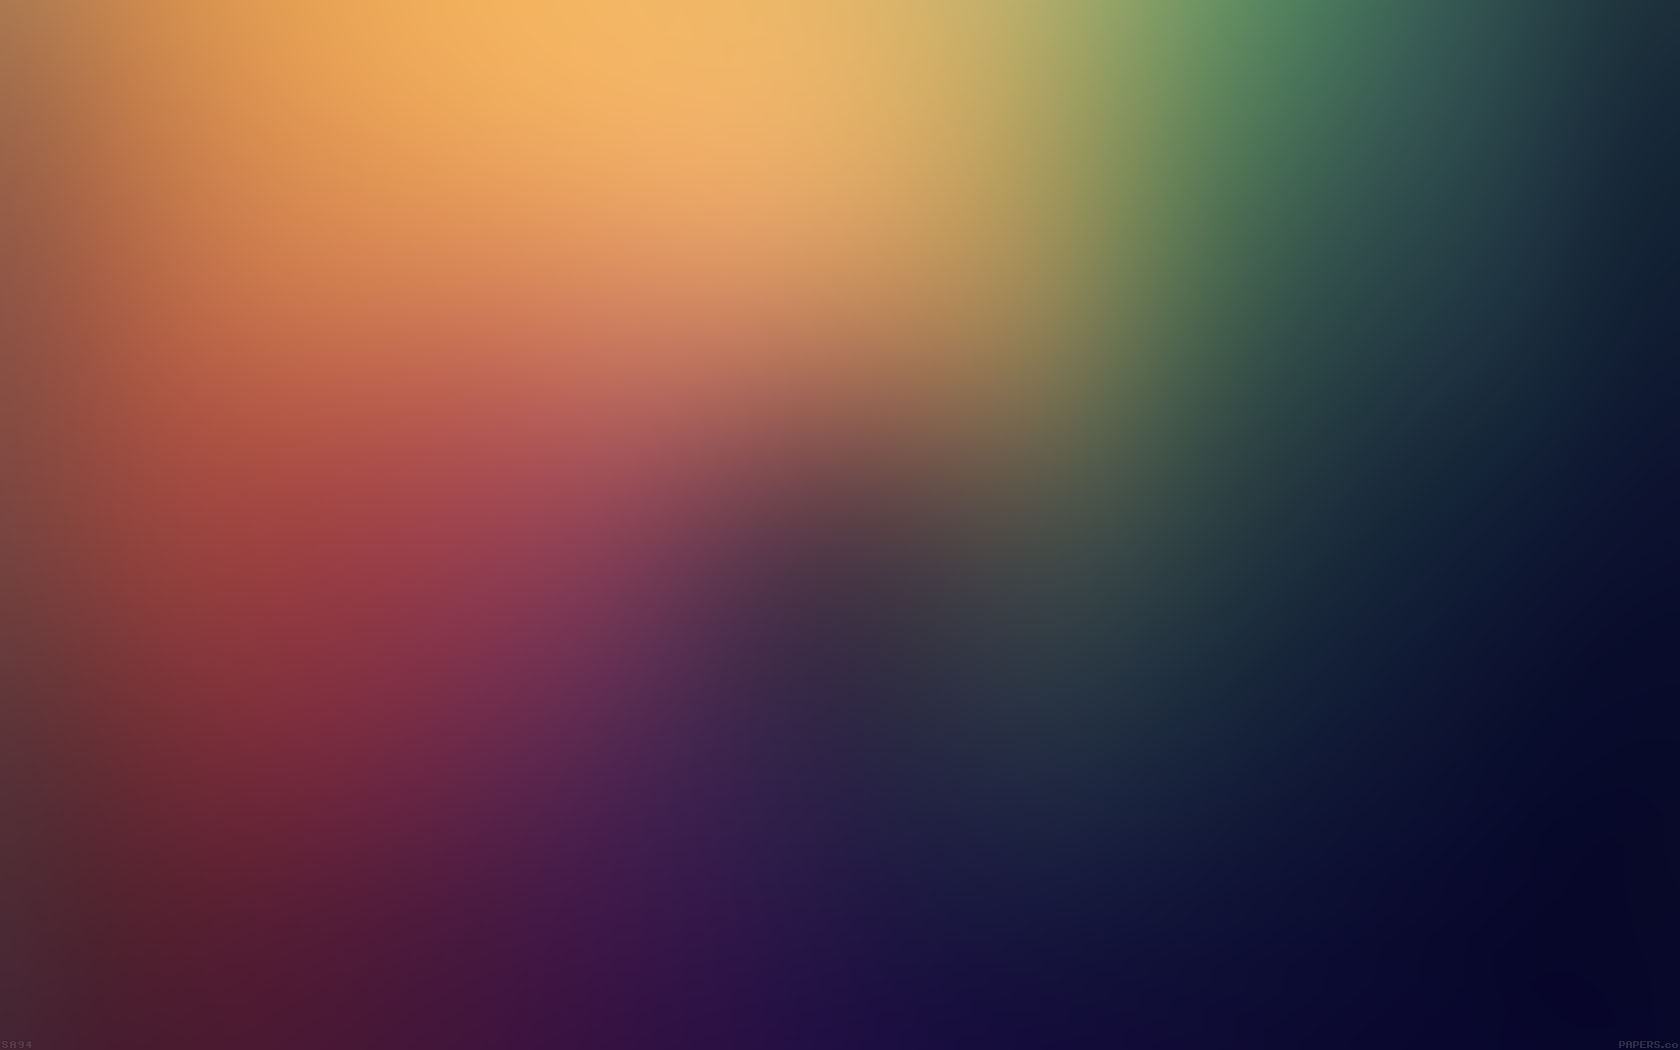 Simple Wallpapers Colors Fall Sa94 Wallpaper All The Colors Blur Papers Co